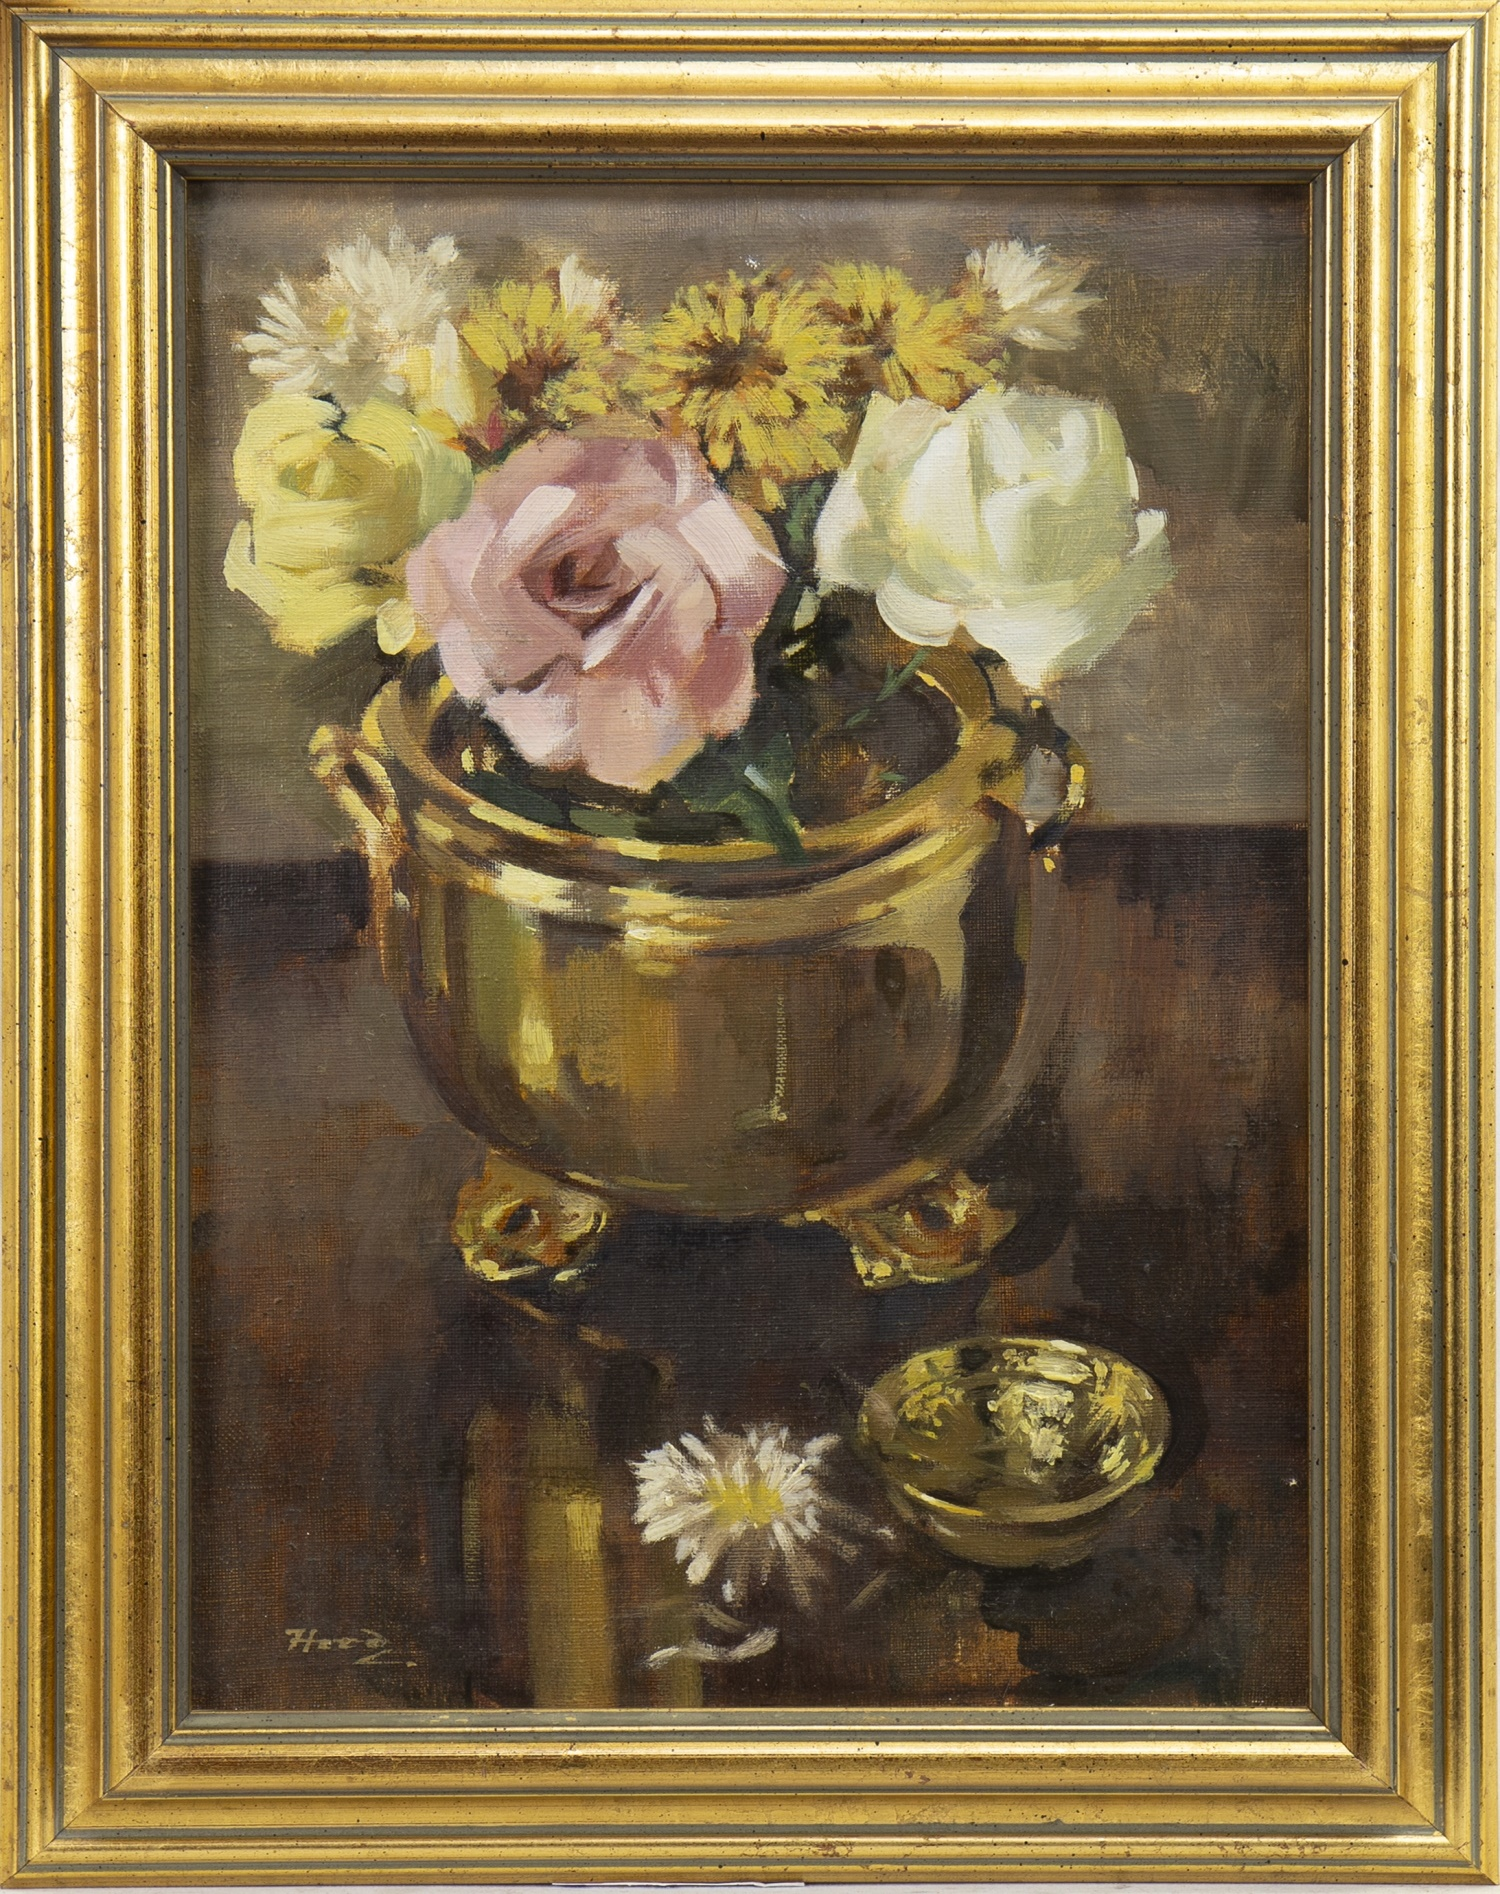 ROSES AND CHRYSANTHEMUMS, AN OIL BY ERNEST HOOD